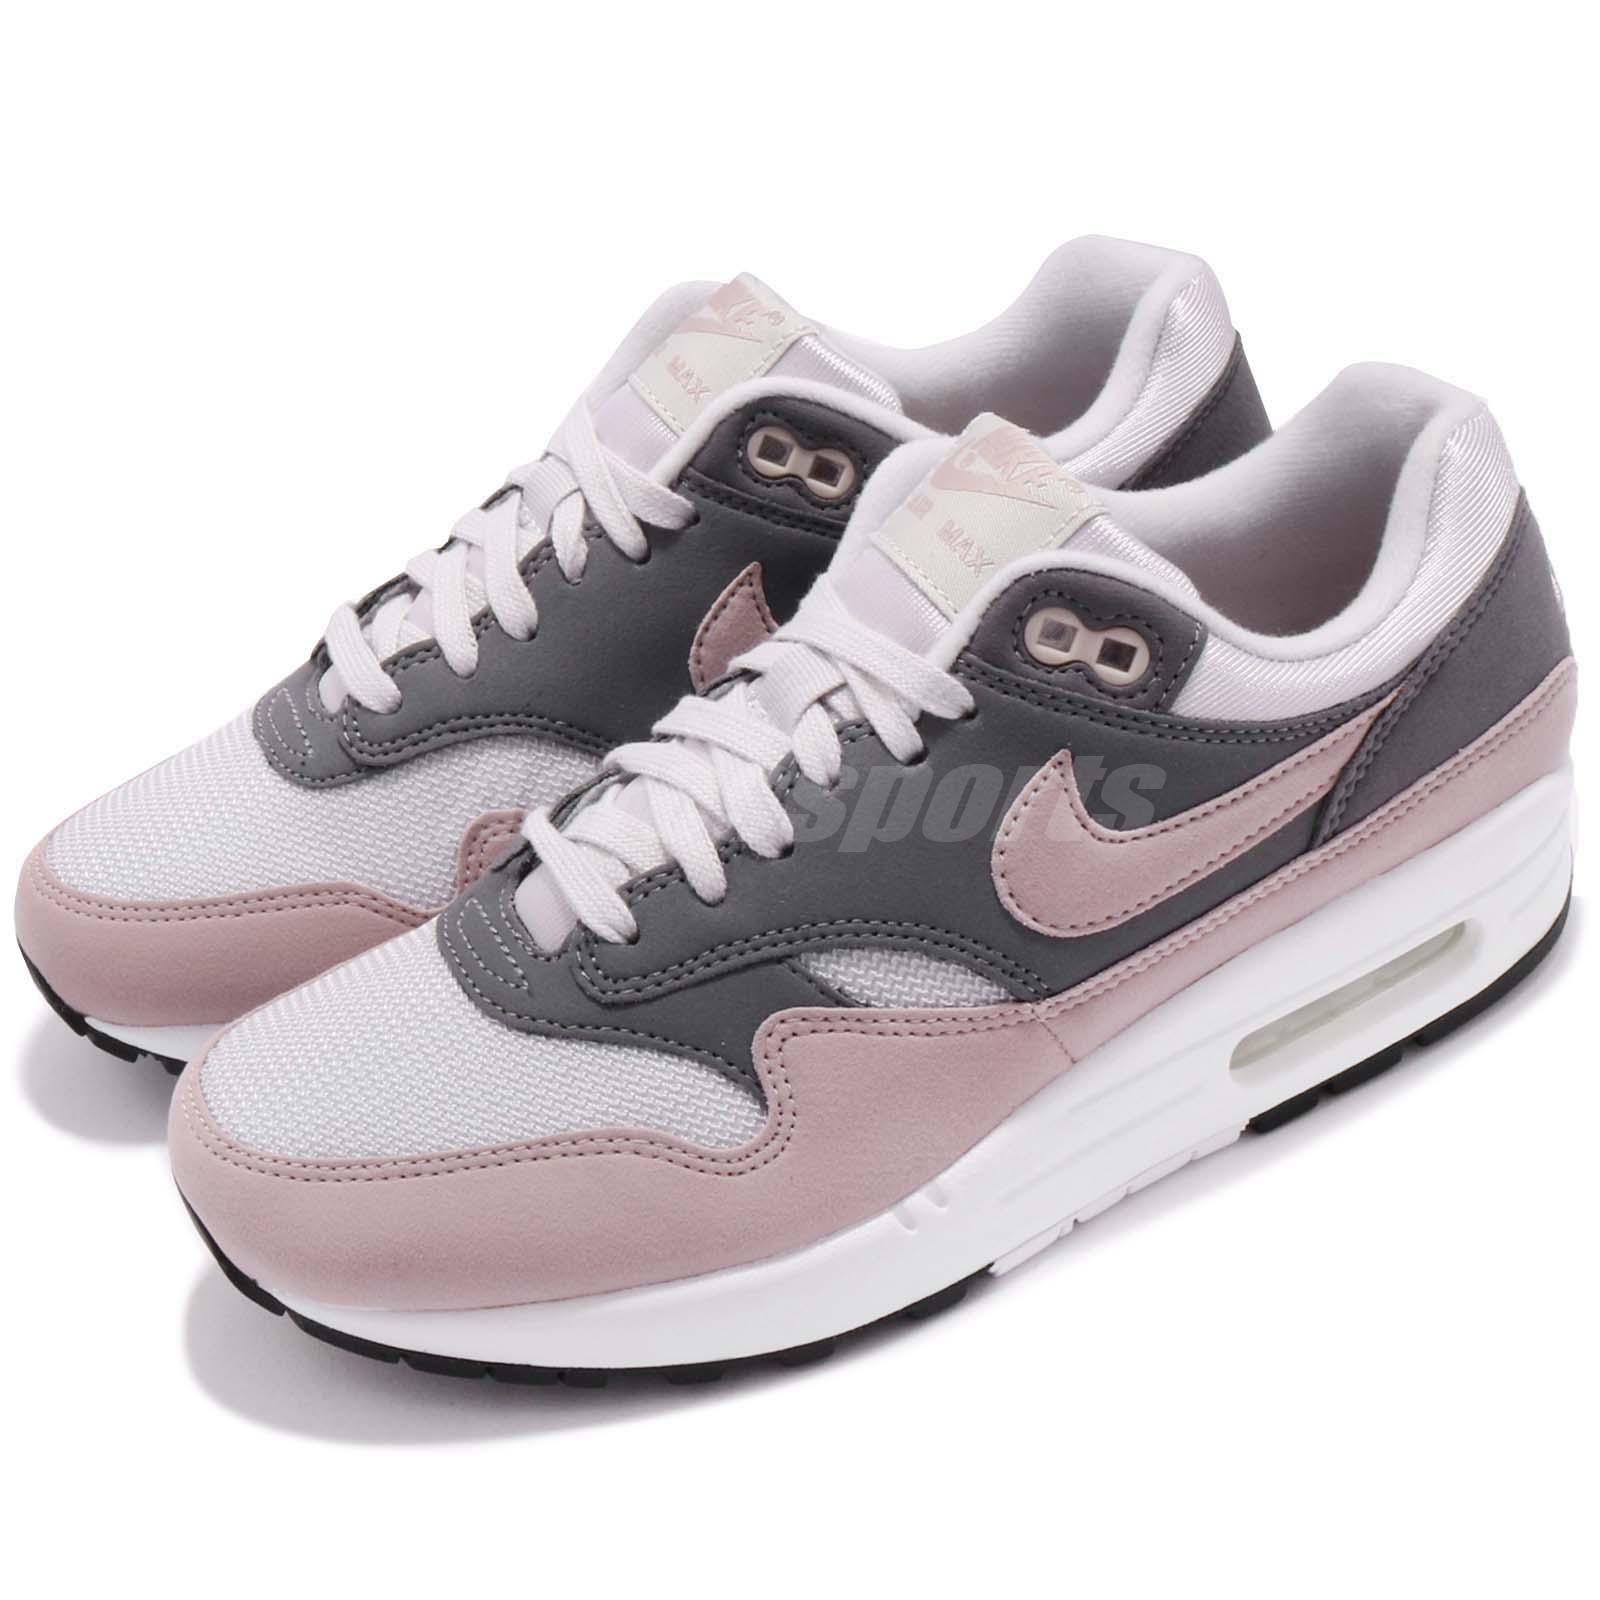 Nike Wmns Air Max 1 One Vast Grey Particle Rose Women Running Shoes 319986-032